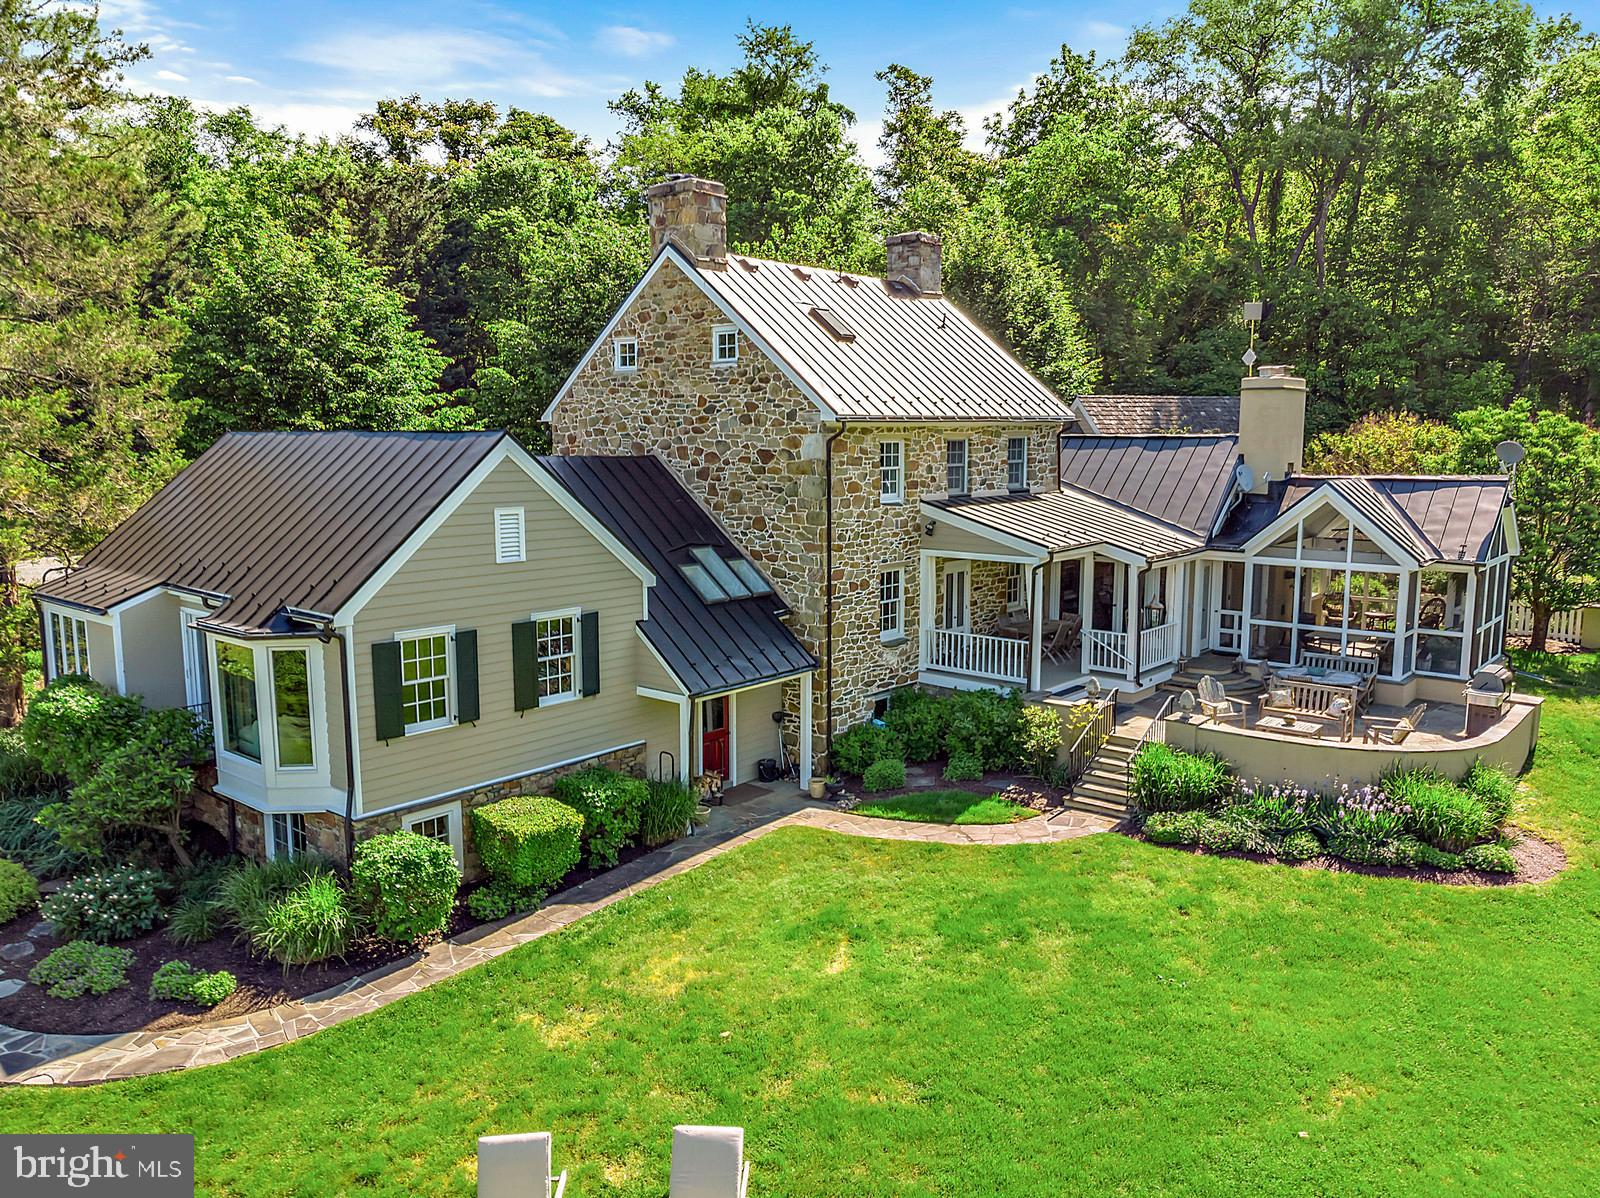 39455 DIGGES VALLEY ROAD, HAMILTON, VA 20158